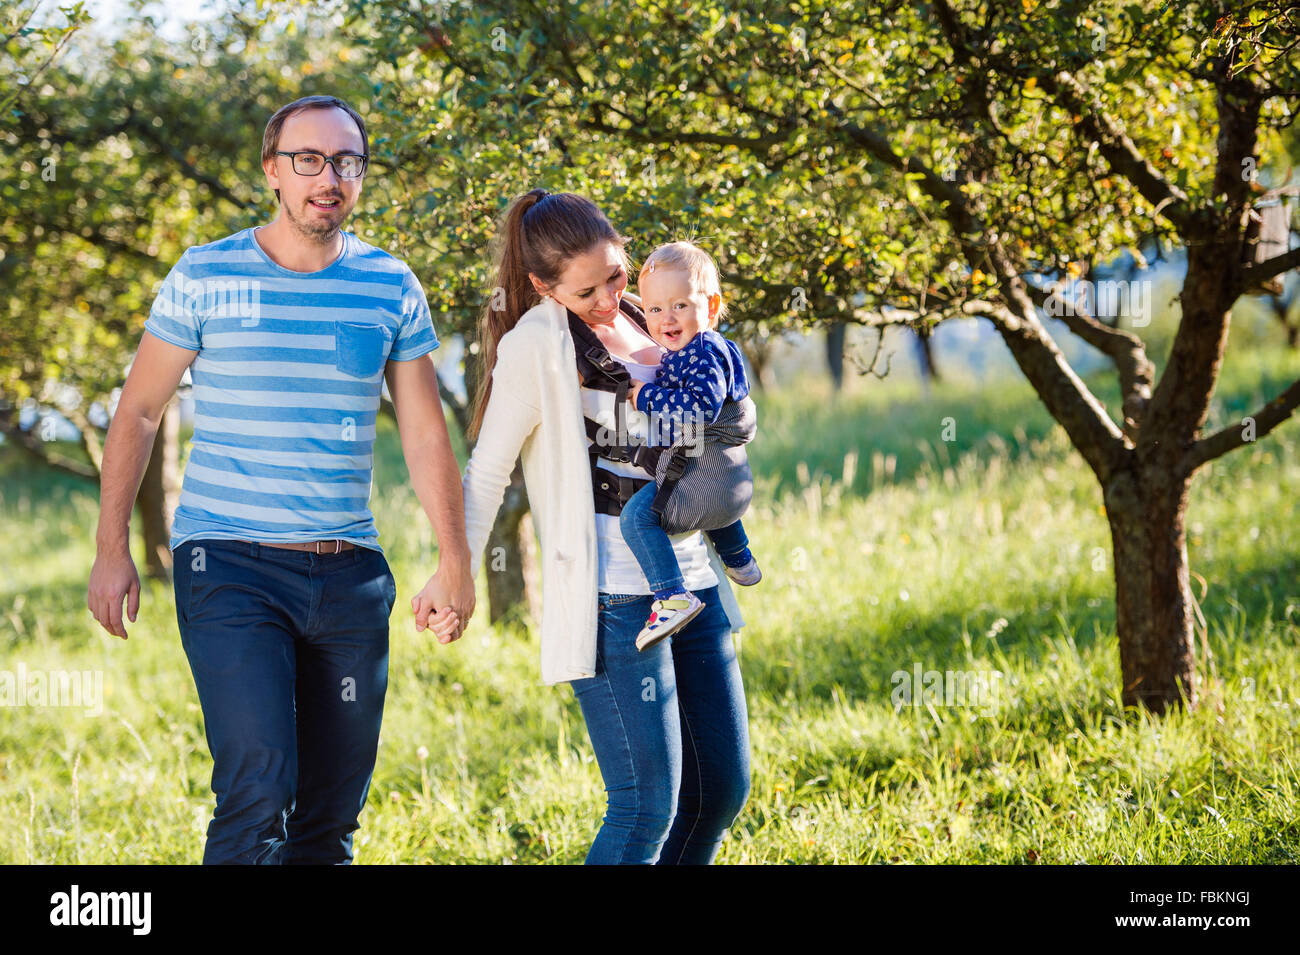 Happy family in nature - Stock Image